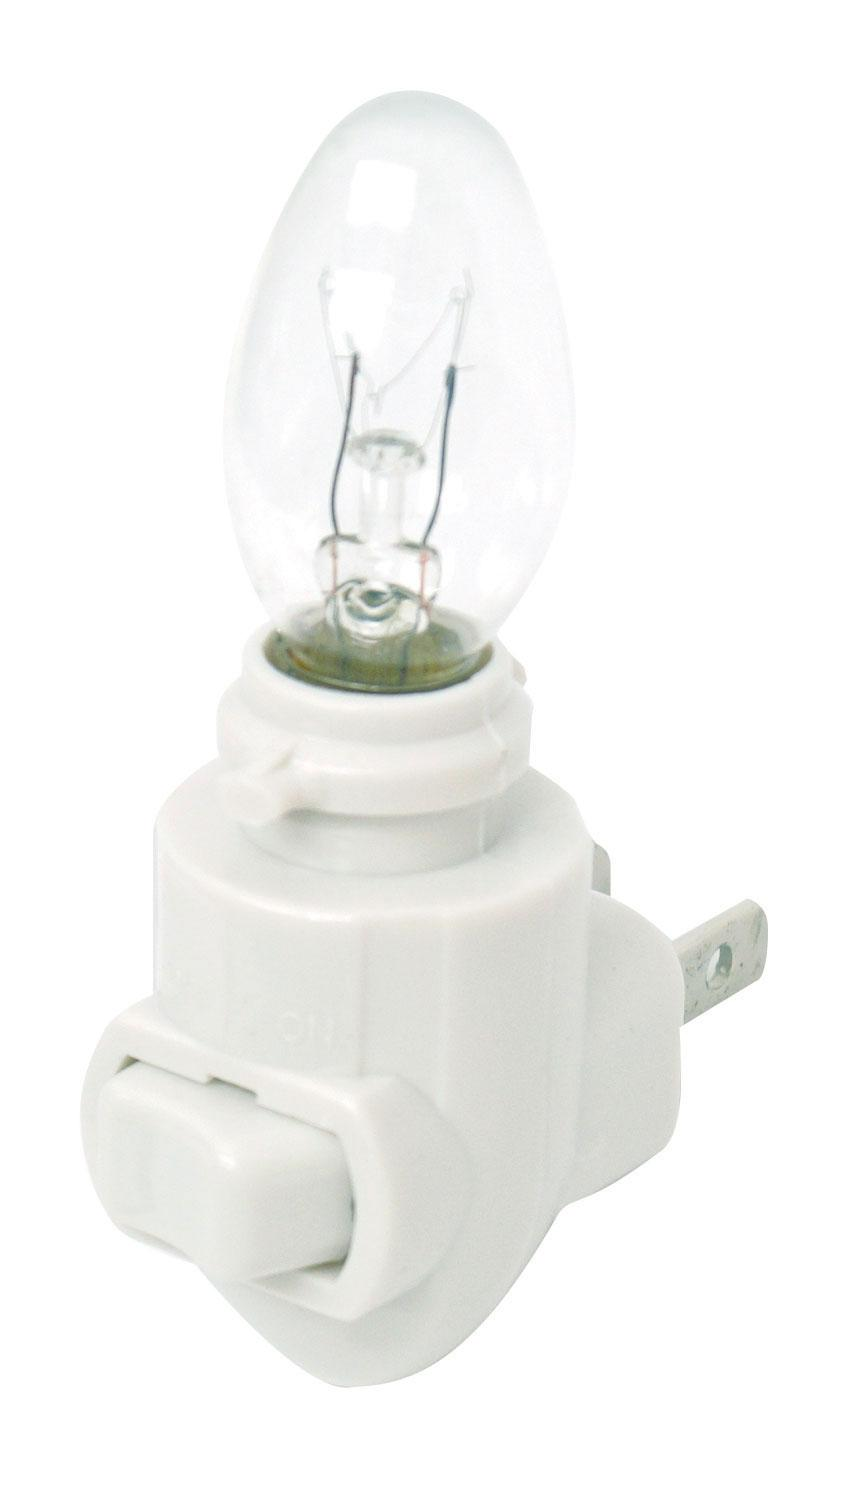 White Night Light With 4w Bulb - 12 Pack